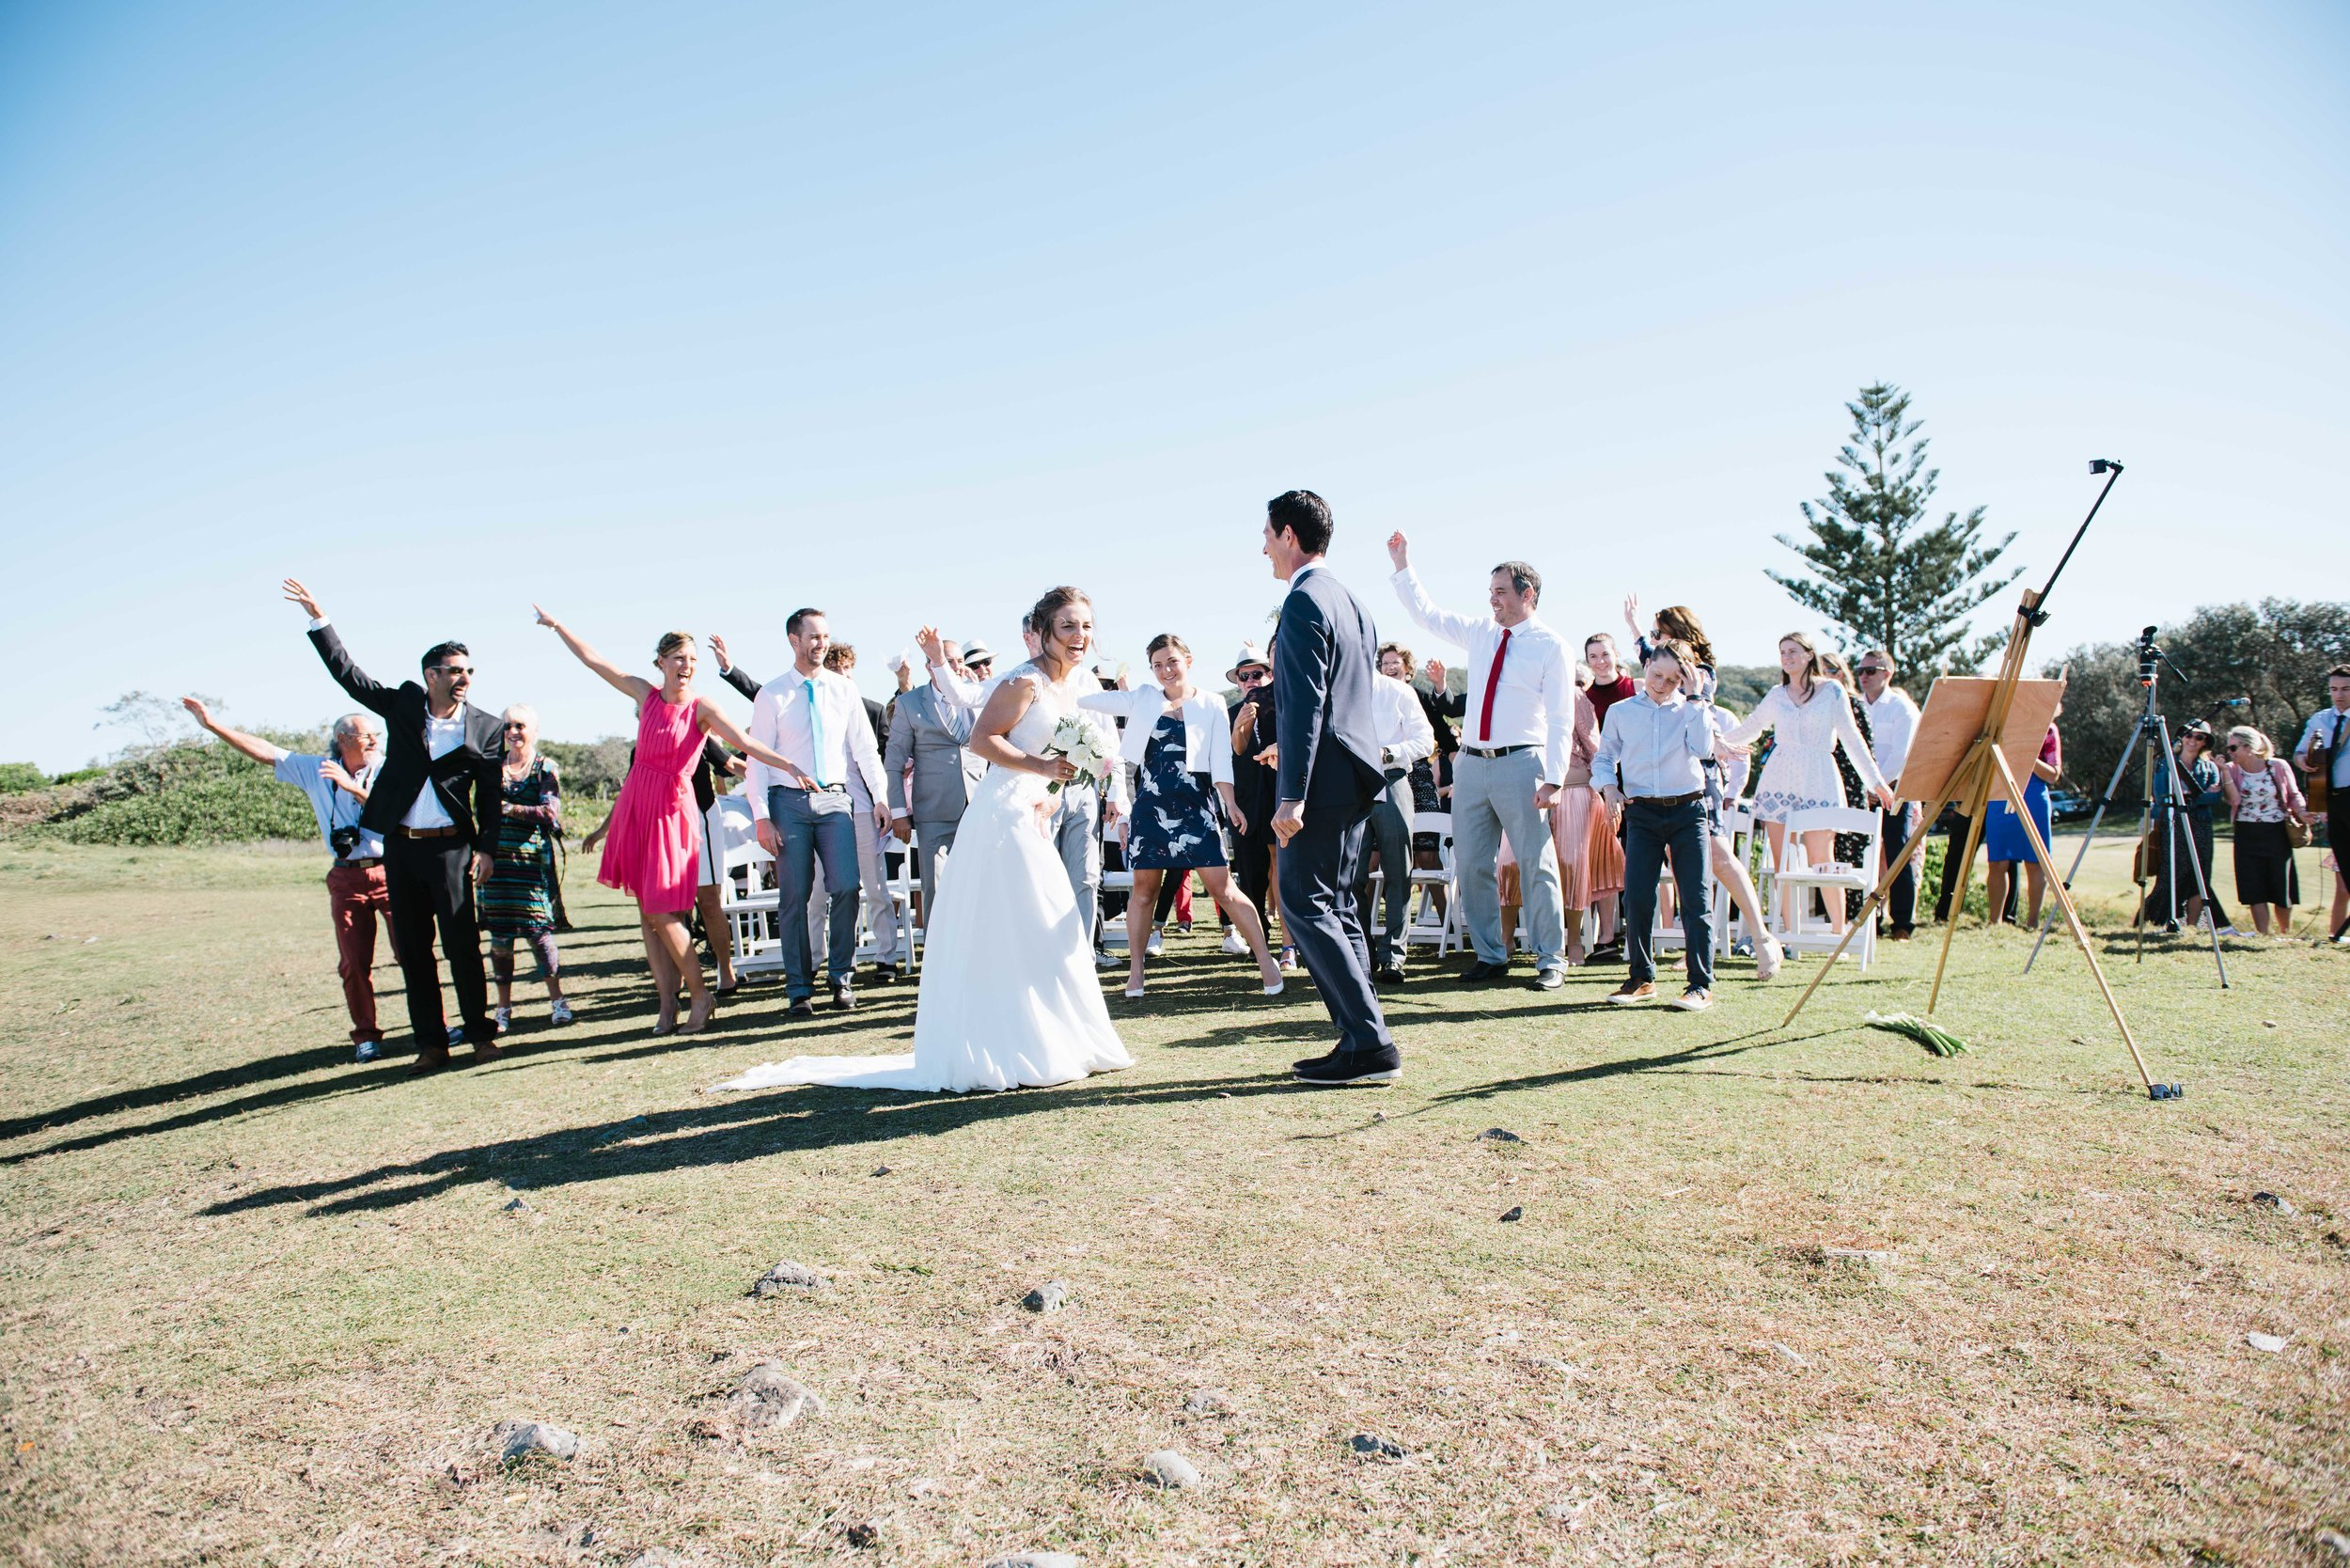 Am and Sam- skyla sage photography weddings, families, byron bay,tweed coast,kingscliff,cabarita,gold coast-184.jpg